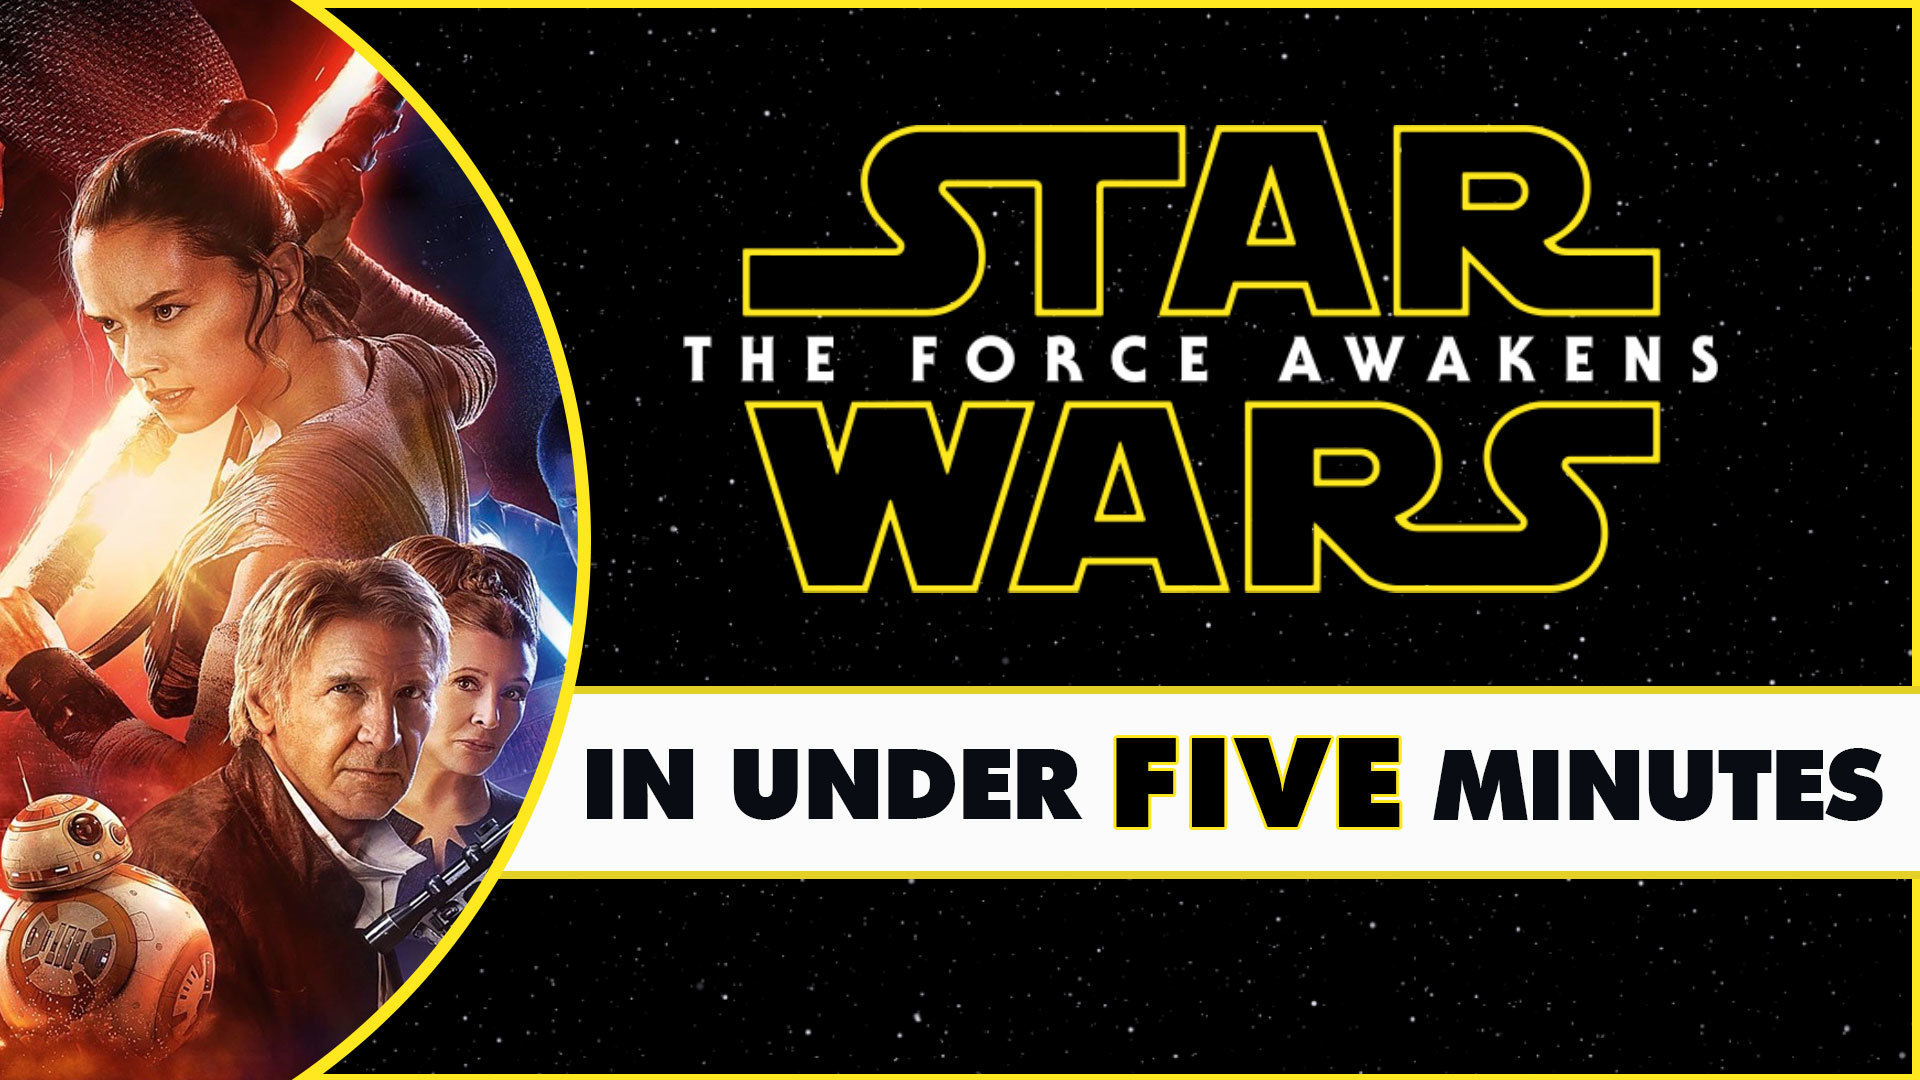 Star Wars: The Force Awakens in Under Five Minutes